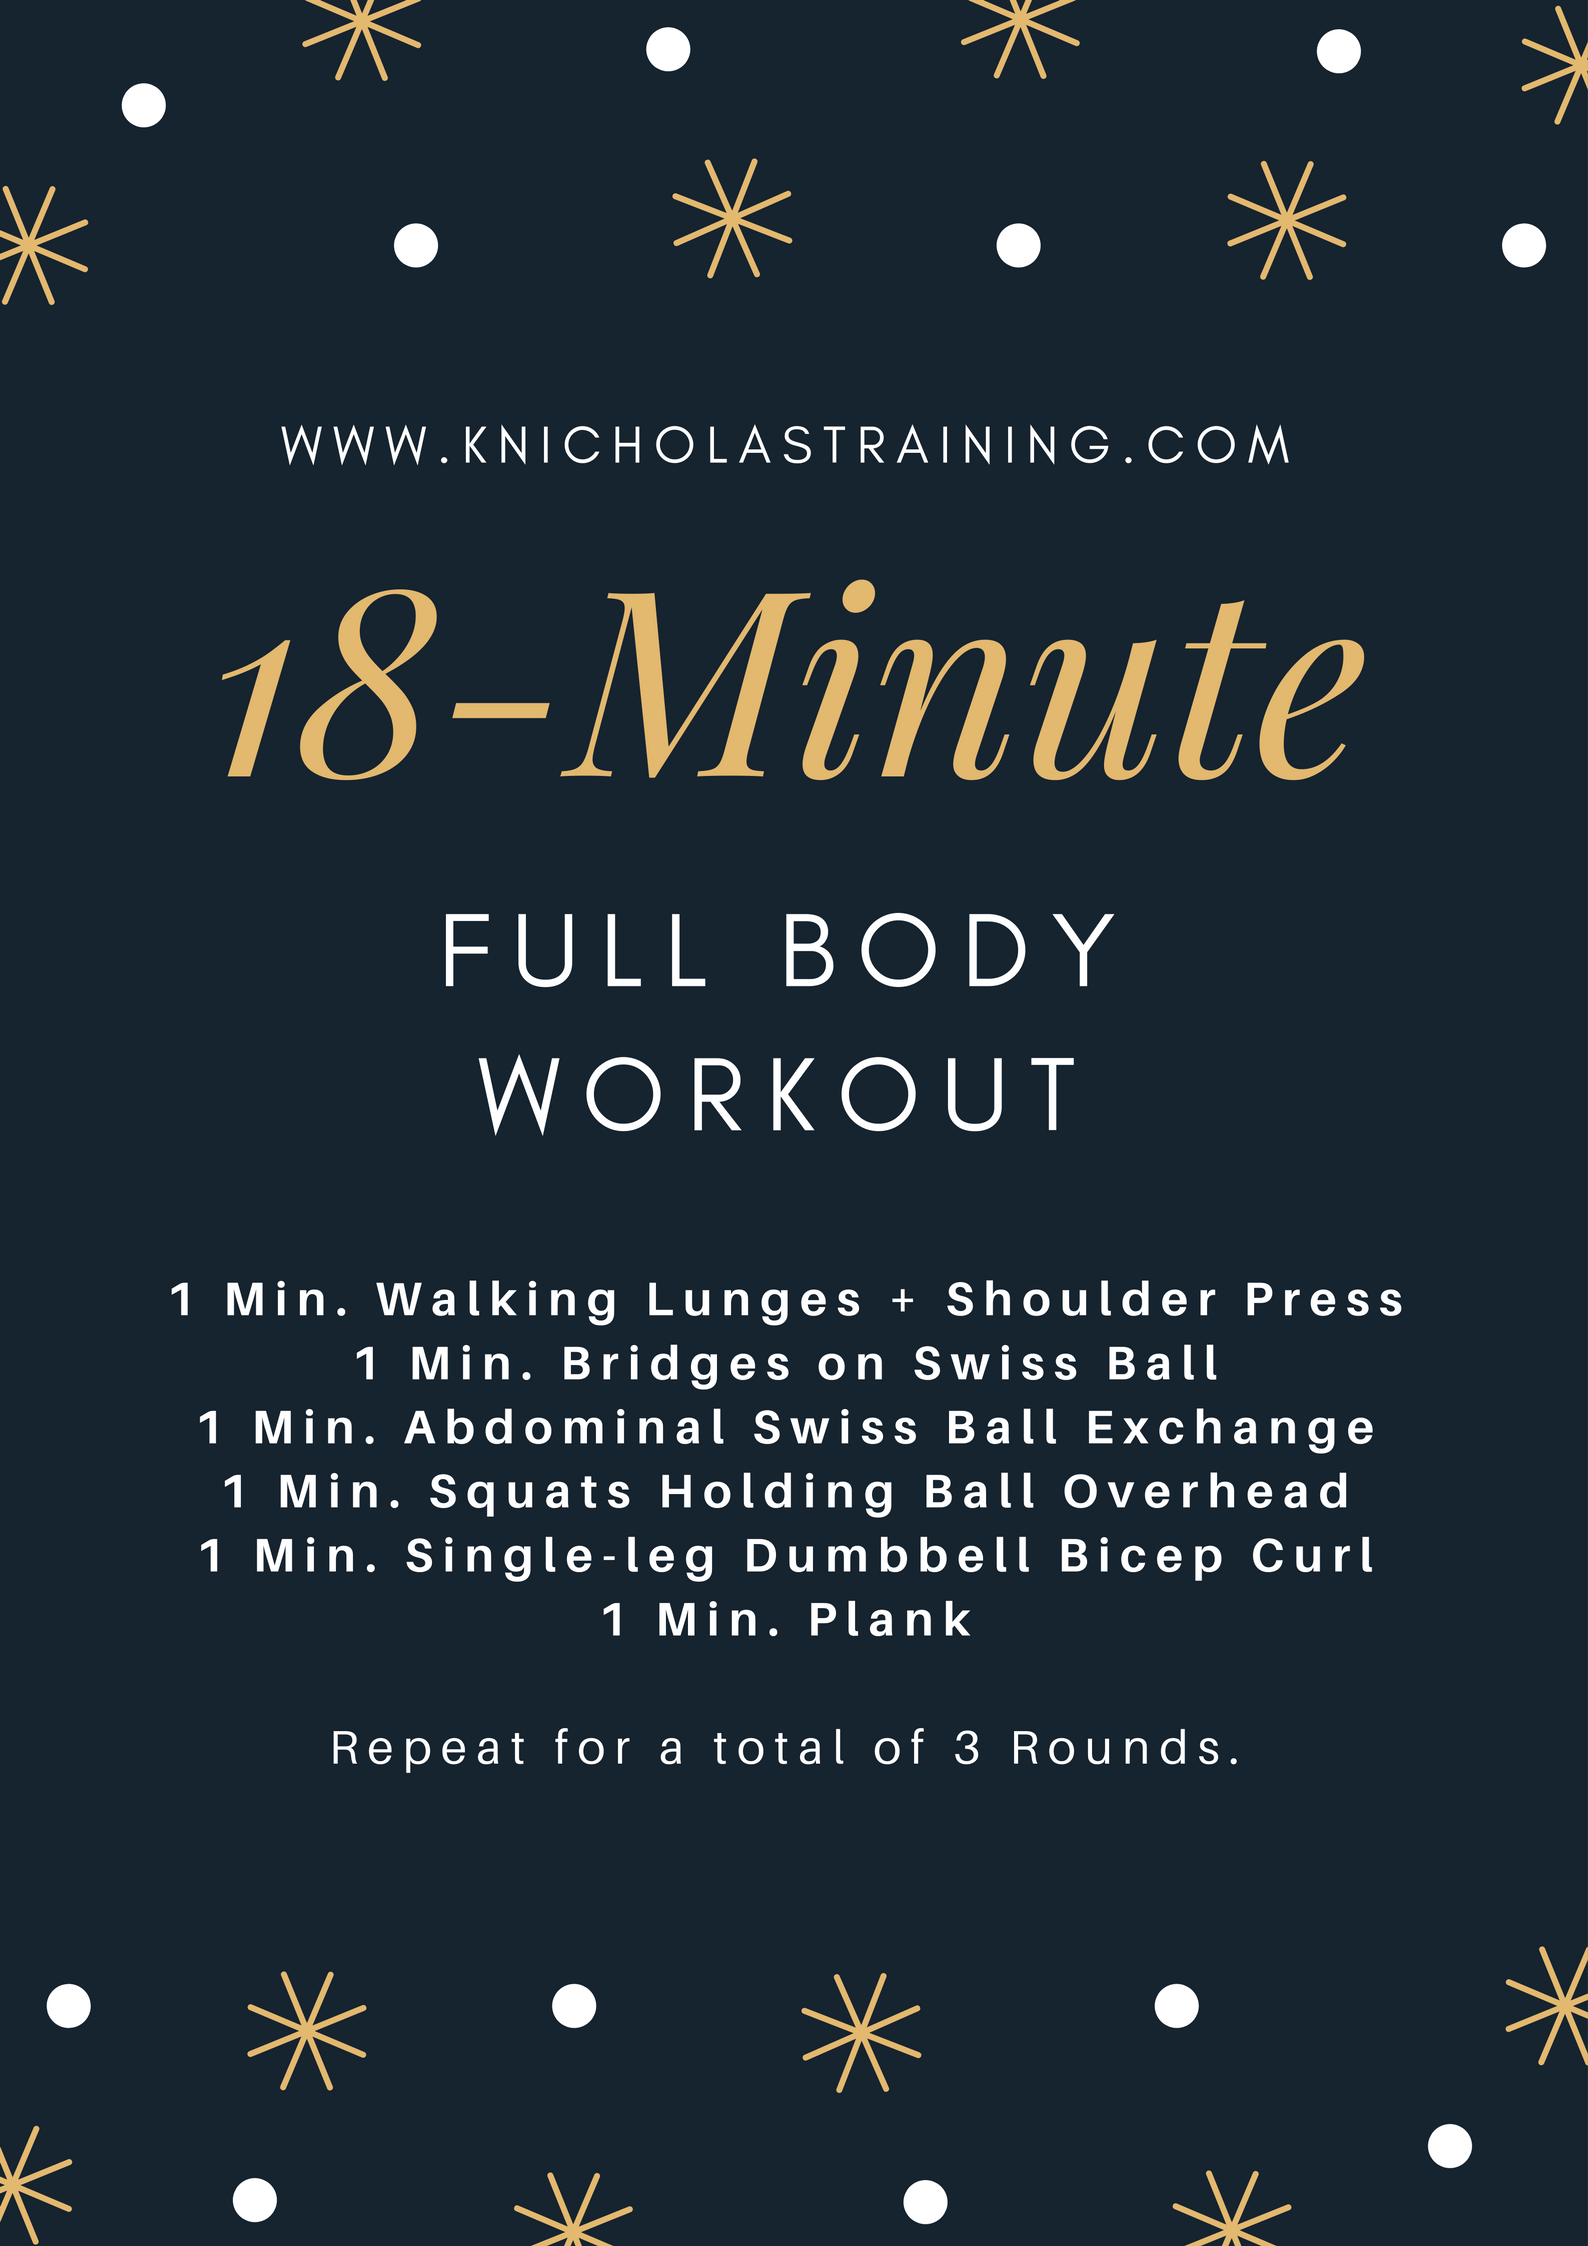 18-Minute Full-Body Workout